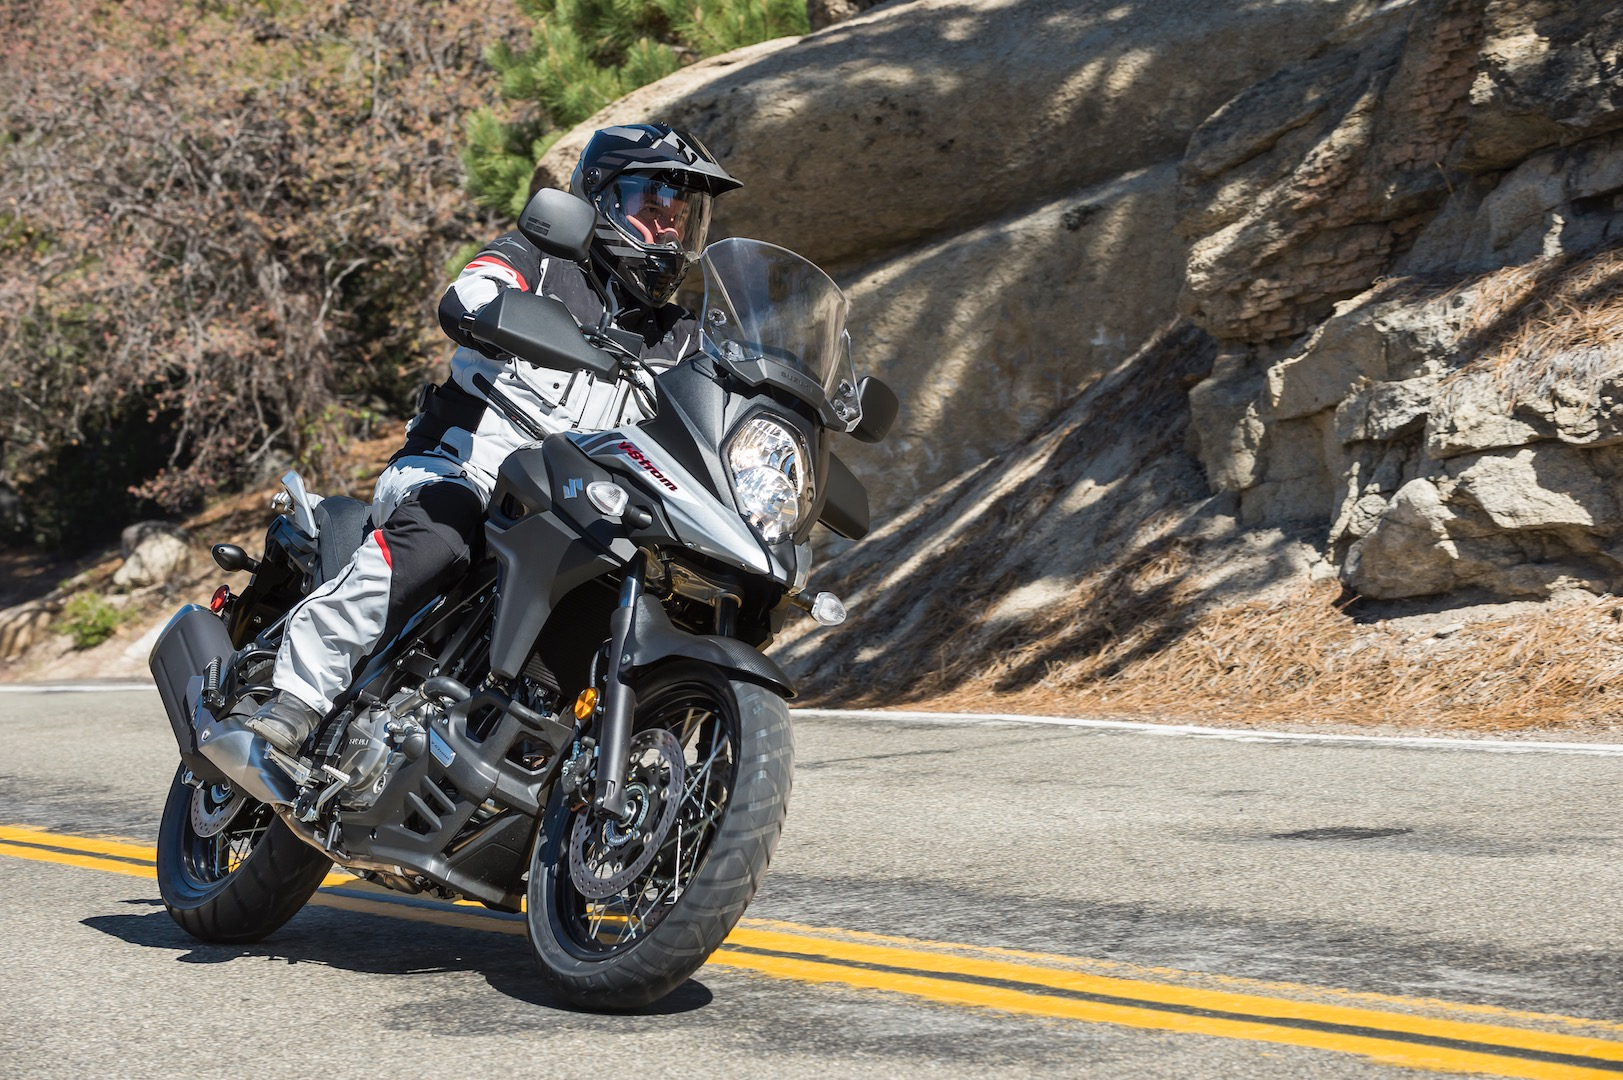 2017 Suzuki V-Strom 650XT Adventure road worthy